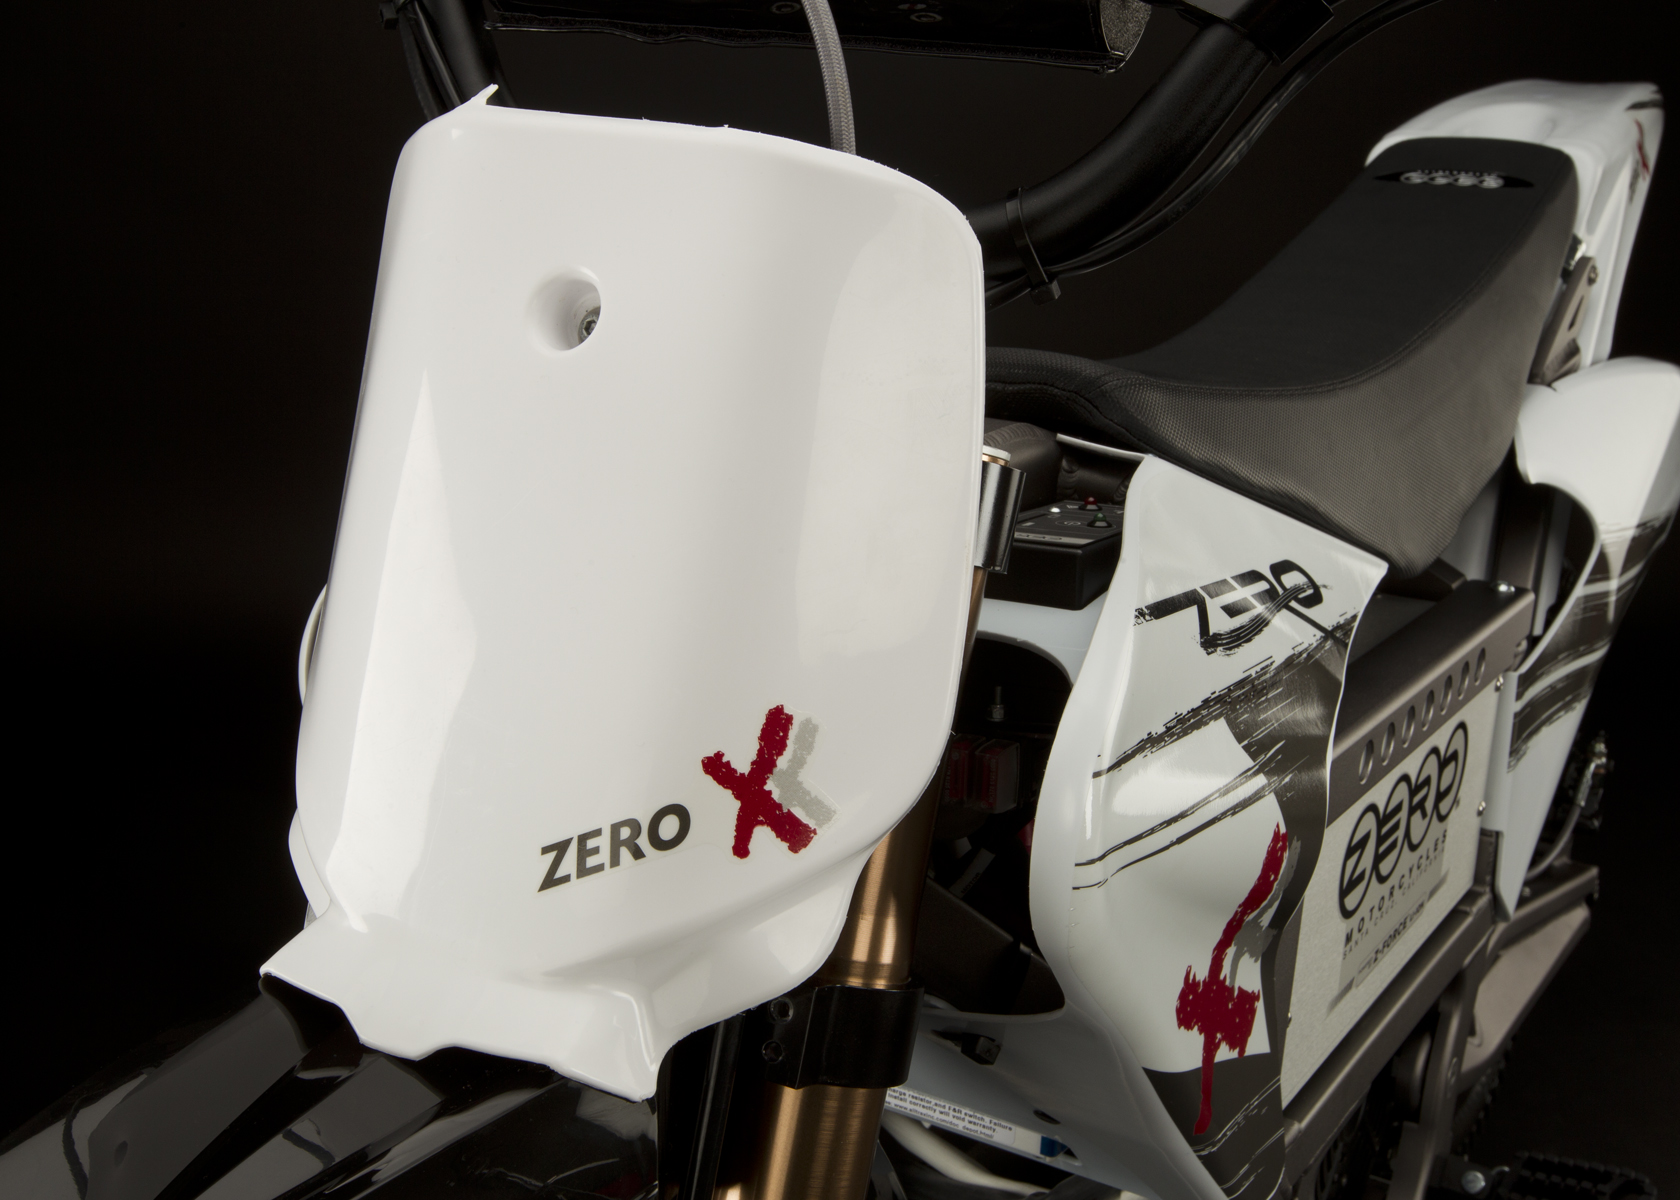 '.2011 Zero X Electric Motorcycle: Number Plate.'